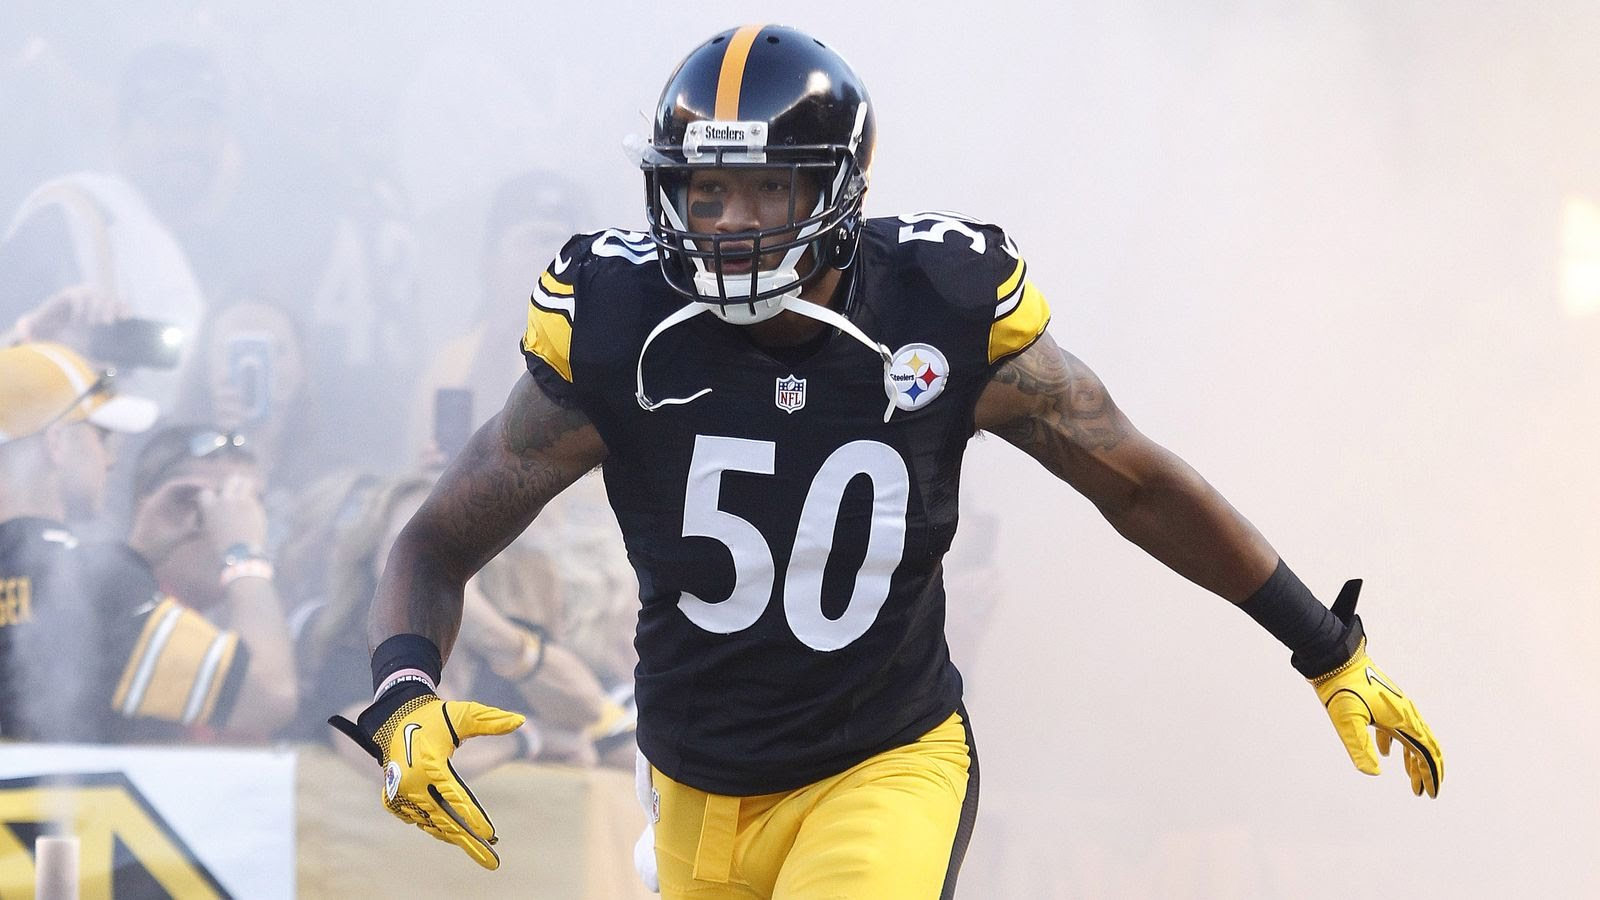 Nfl-steelers-shazier-spinal-injury